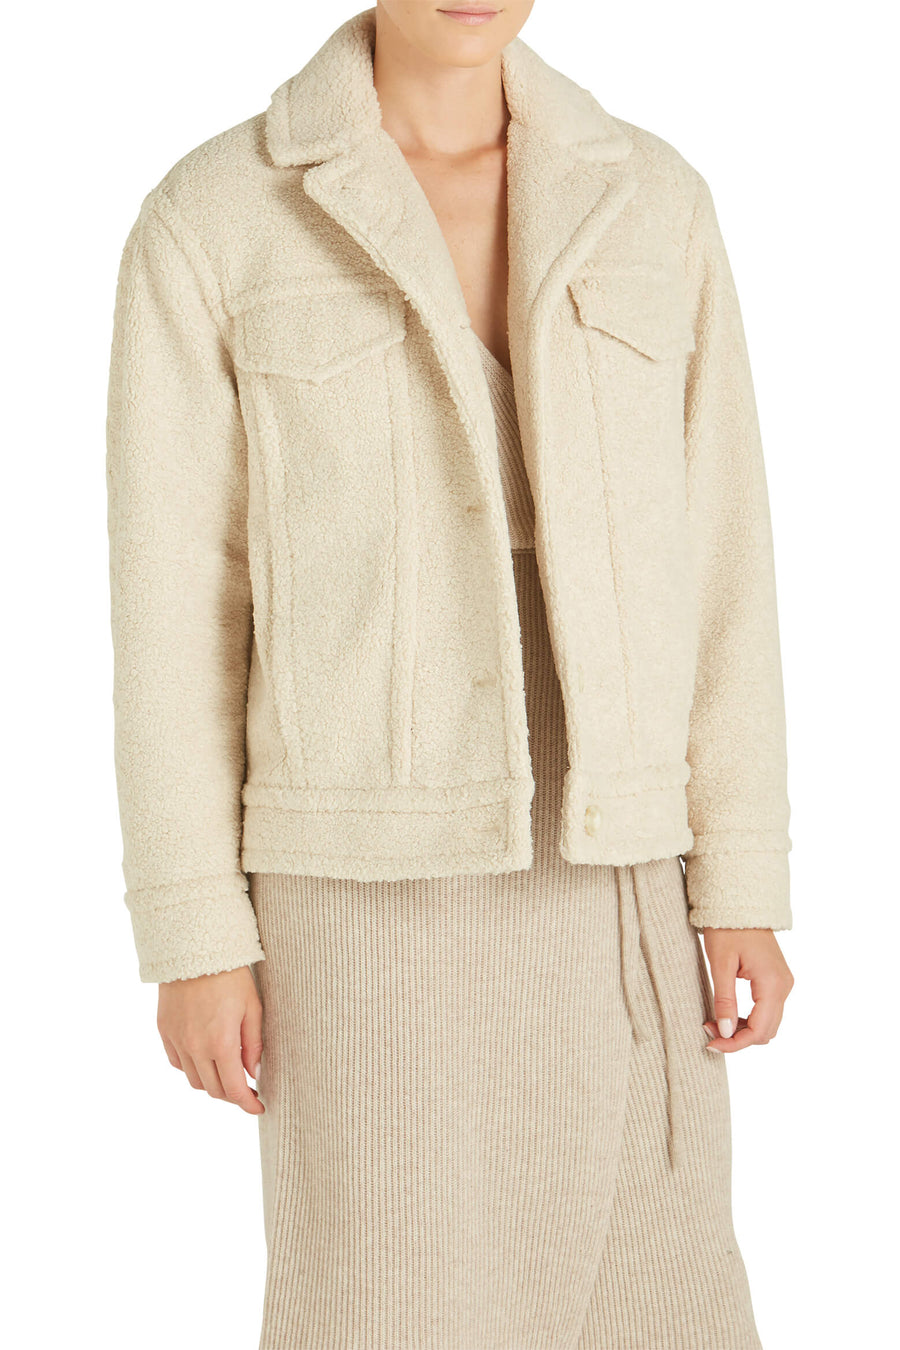 Vince Sherpa Jacket in pearl from The New Trend